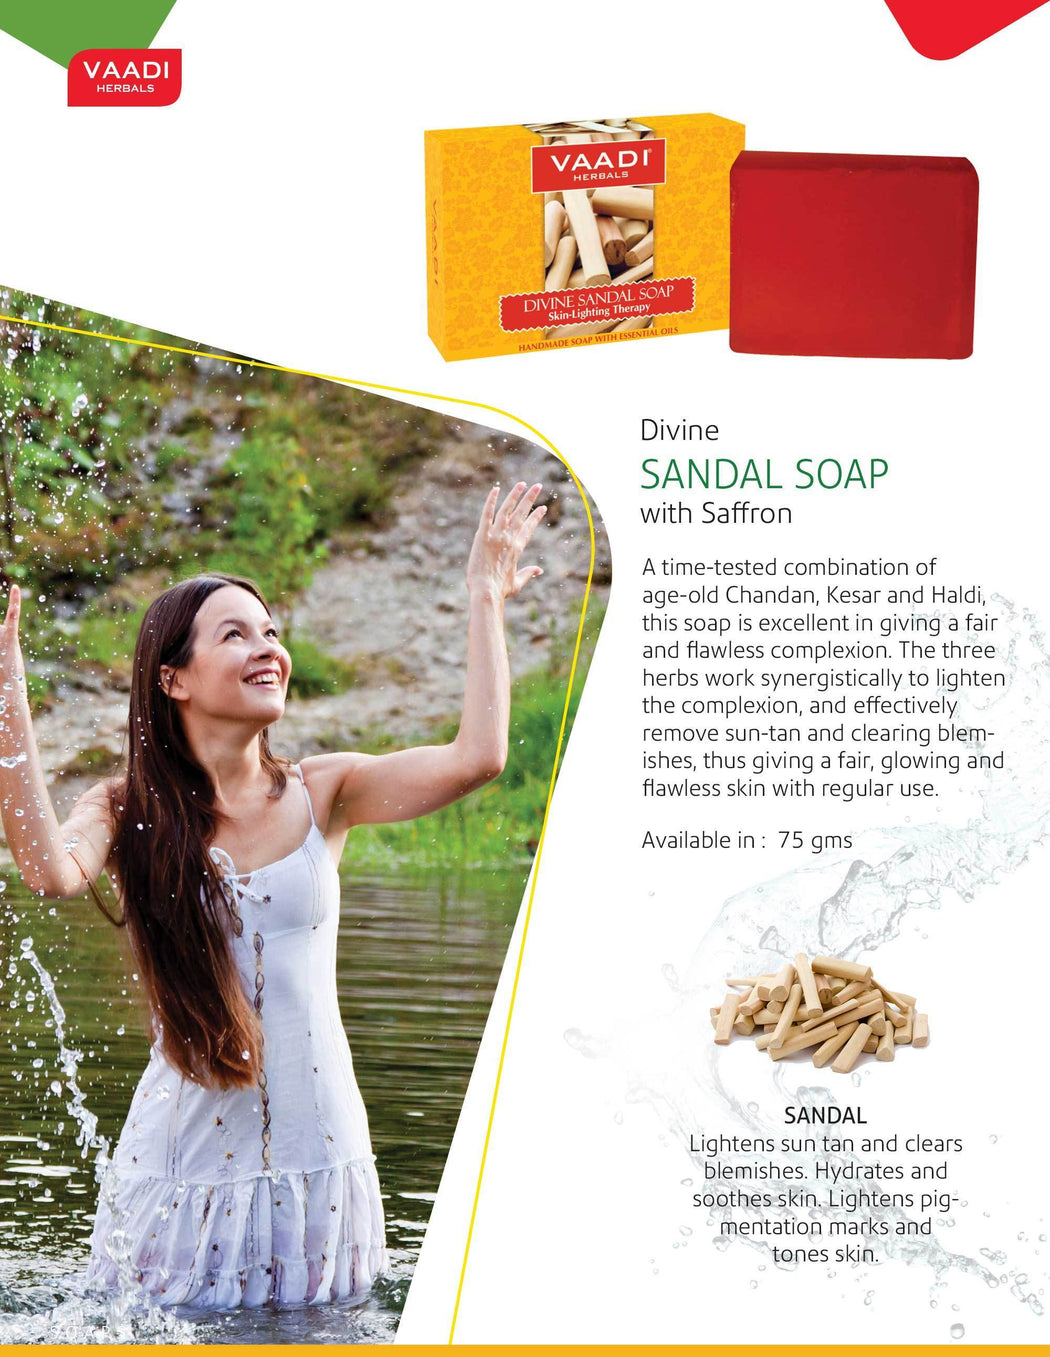 Organic Divine Sandal Soap with Saffron & Turmeric - Skin Lightening Therapy - Lightens Tan & Blemishes (3 x 75 gms / 2.7 oz)